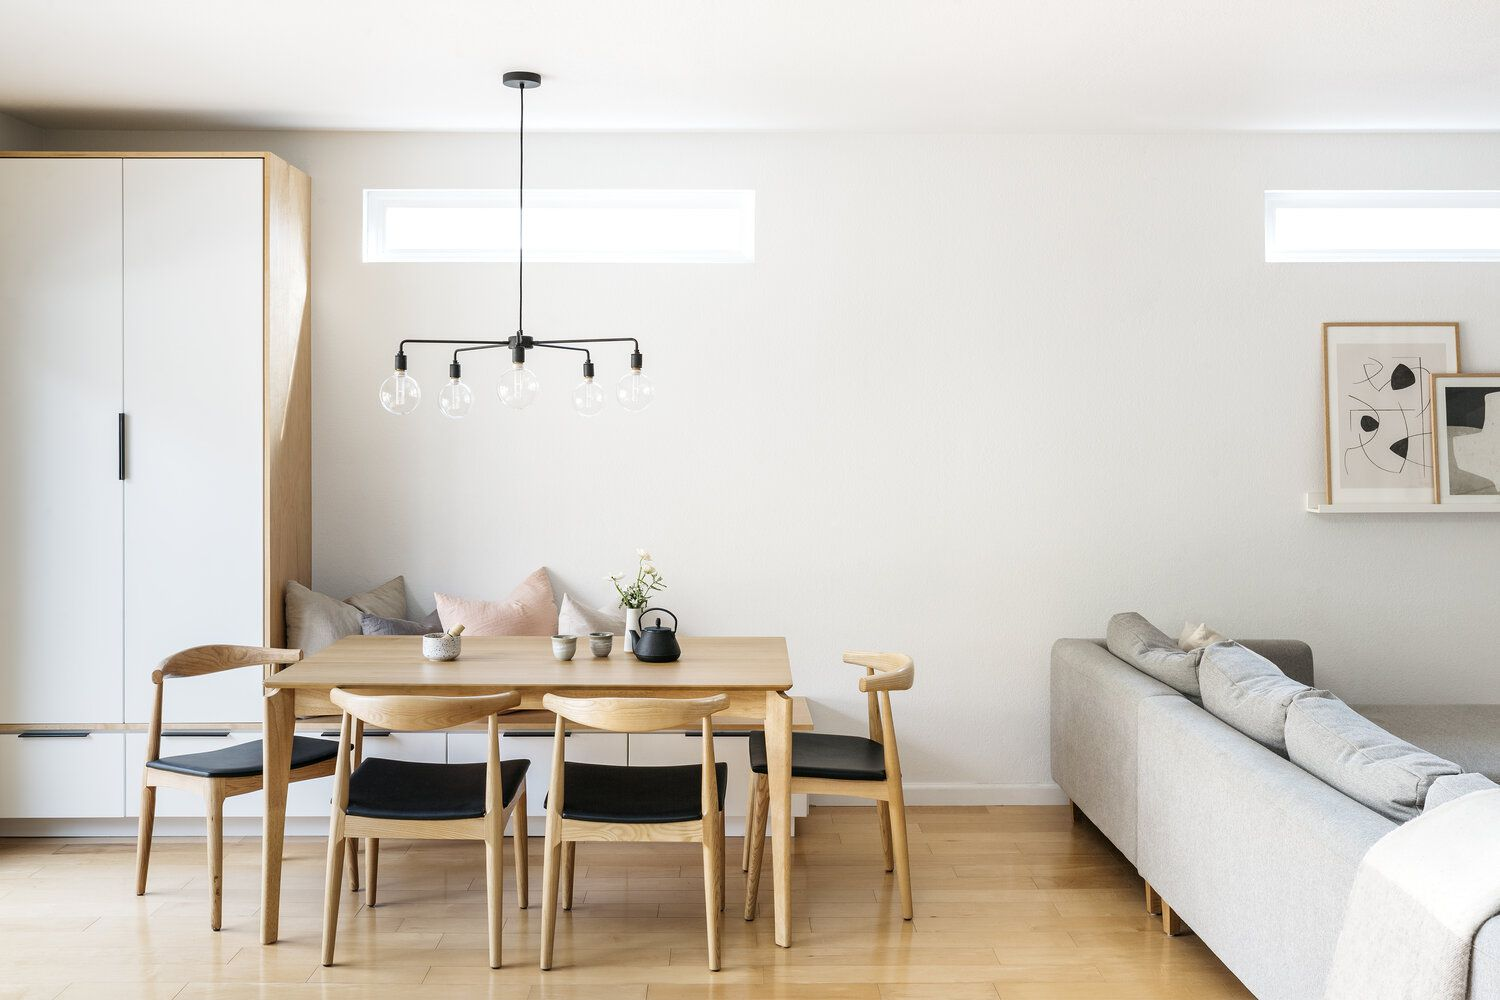 A dining room with sparse decor and a modern lighting fixture